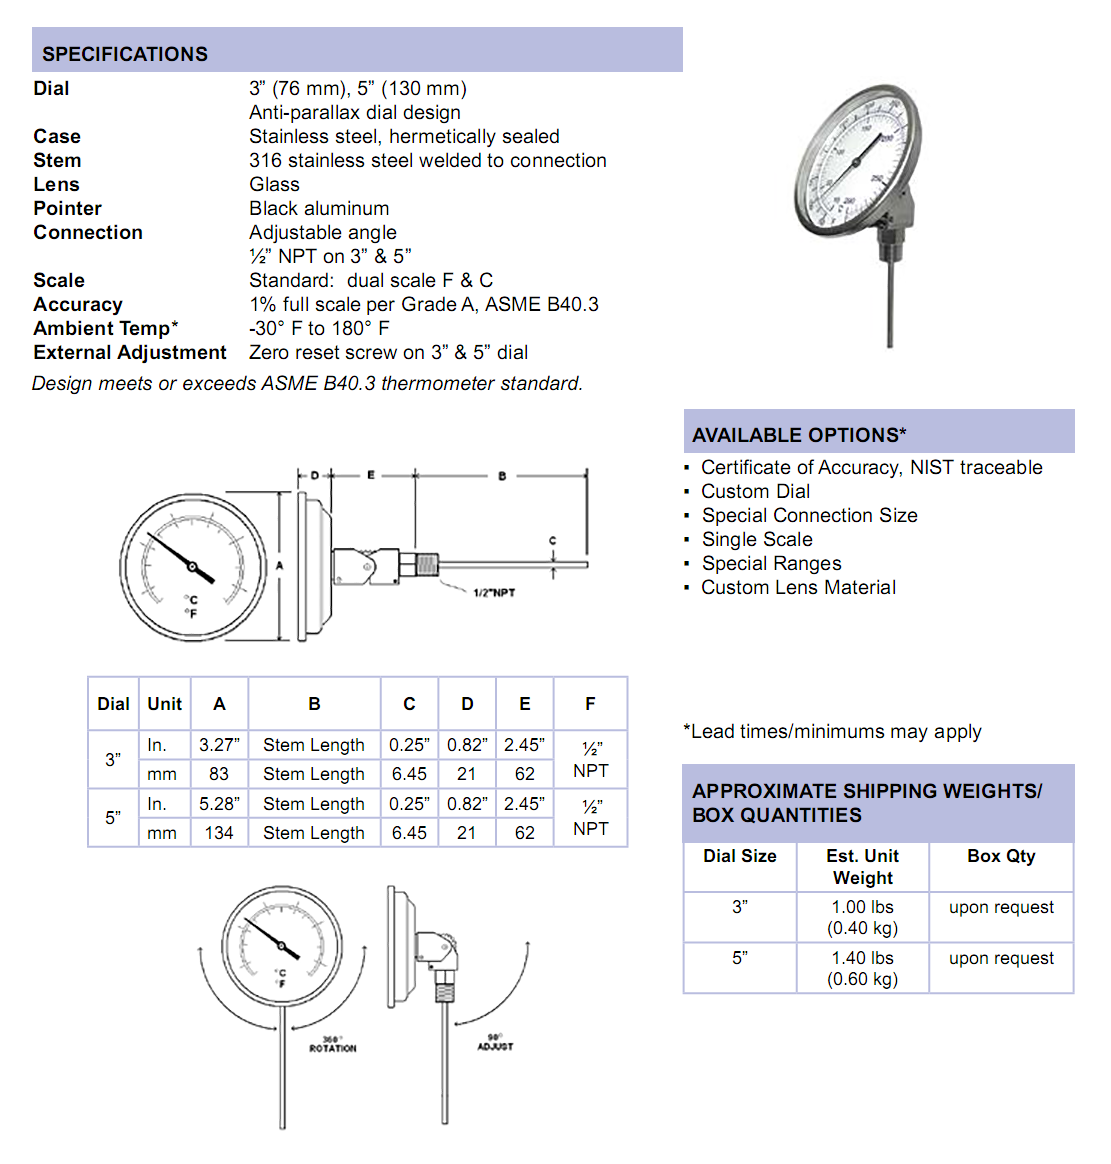 bimetal-thermometers-adjustable-angle-type-specifications